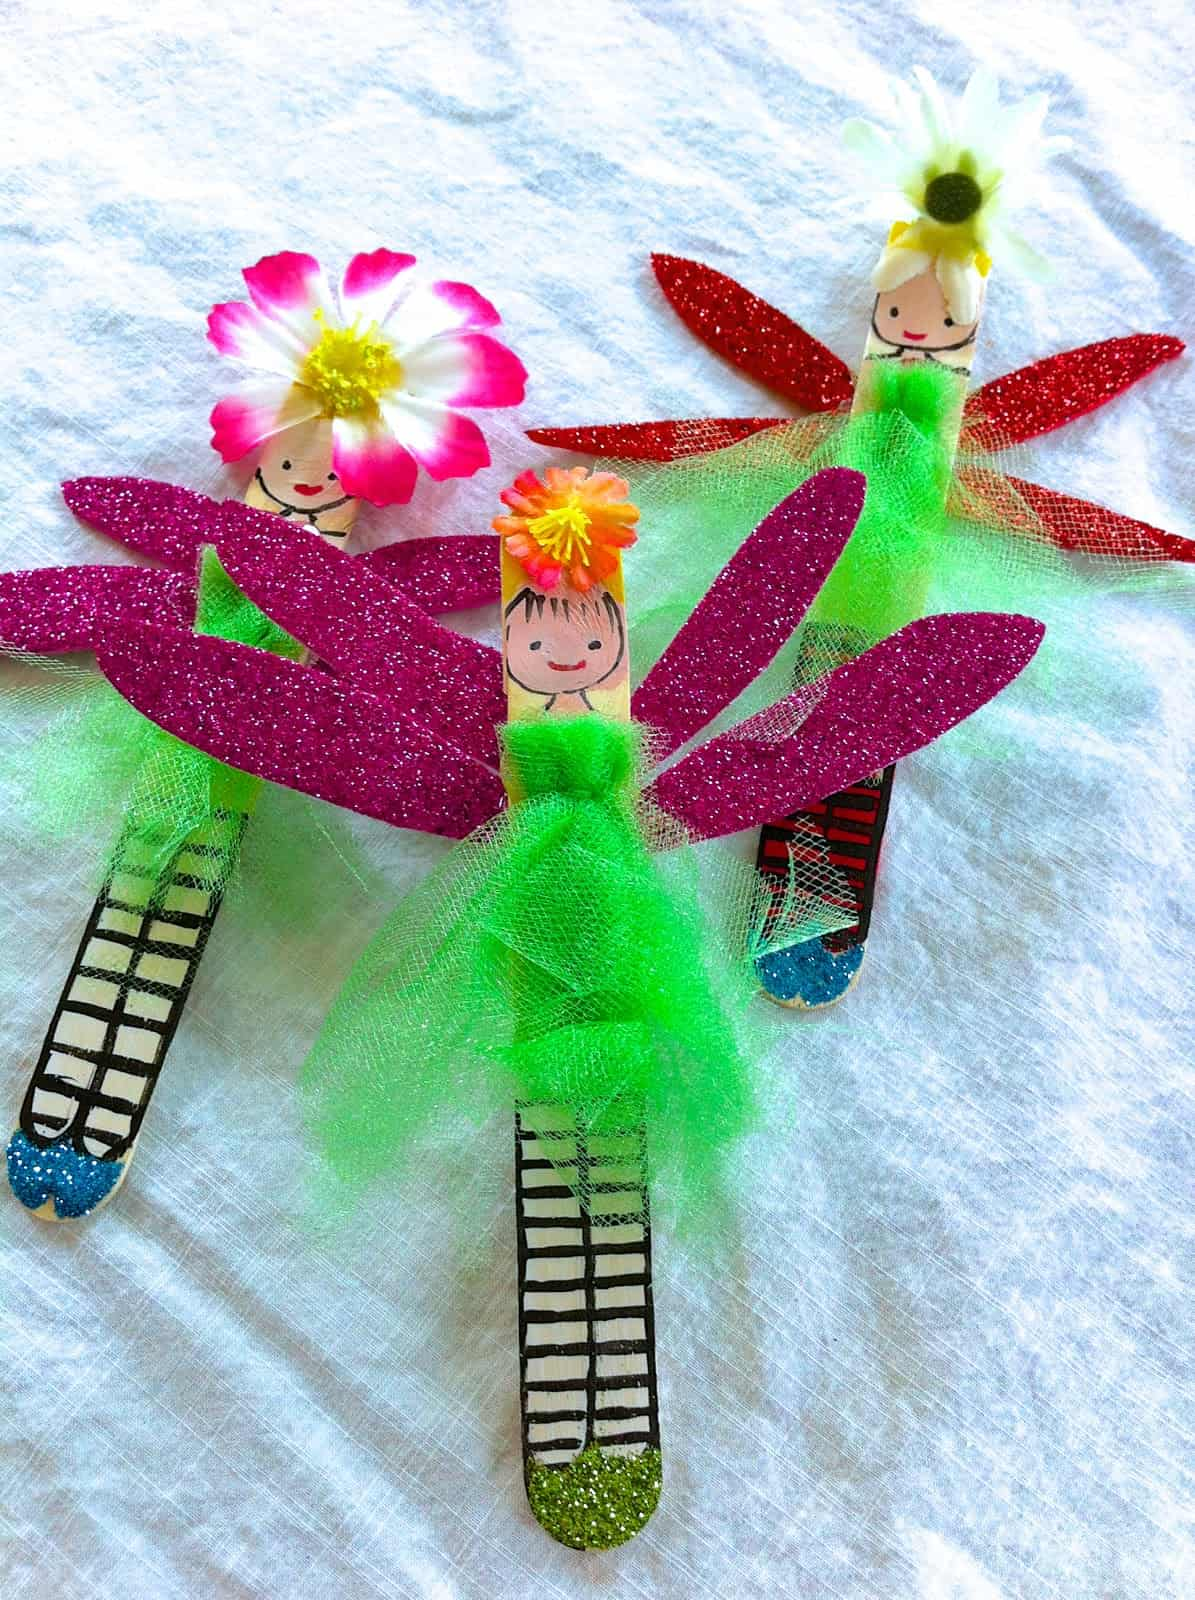 Popsicle stick fairies